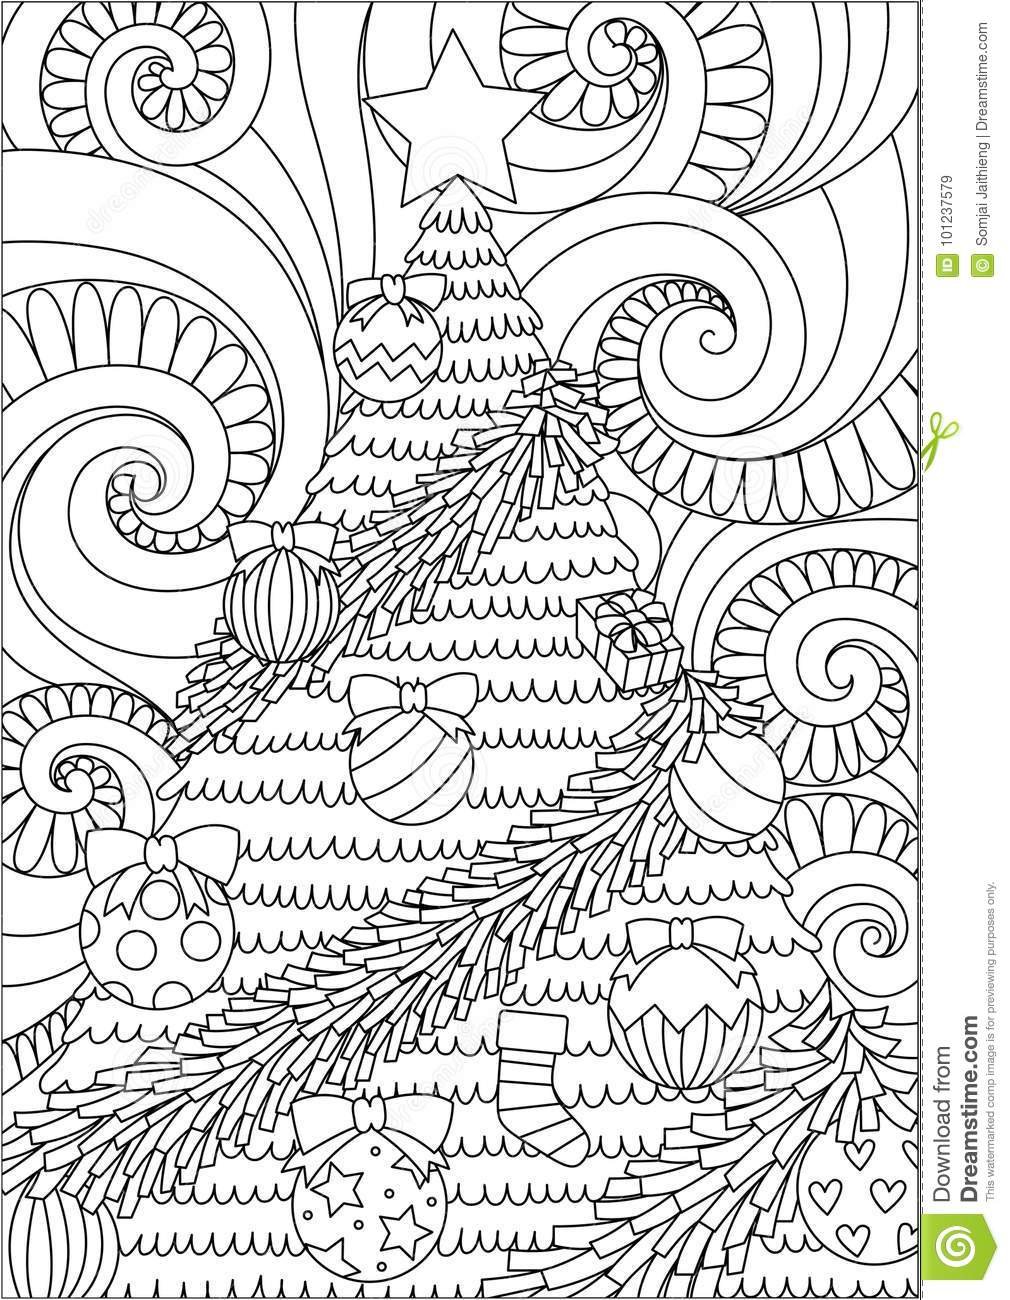 Line Art Poster Design : Line art design of storm scrolling and christmas tree for